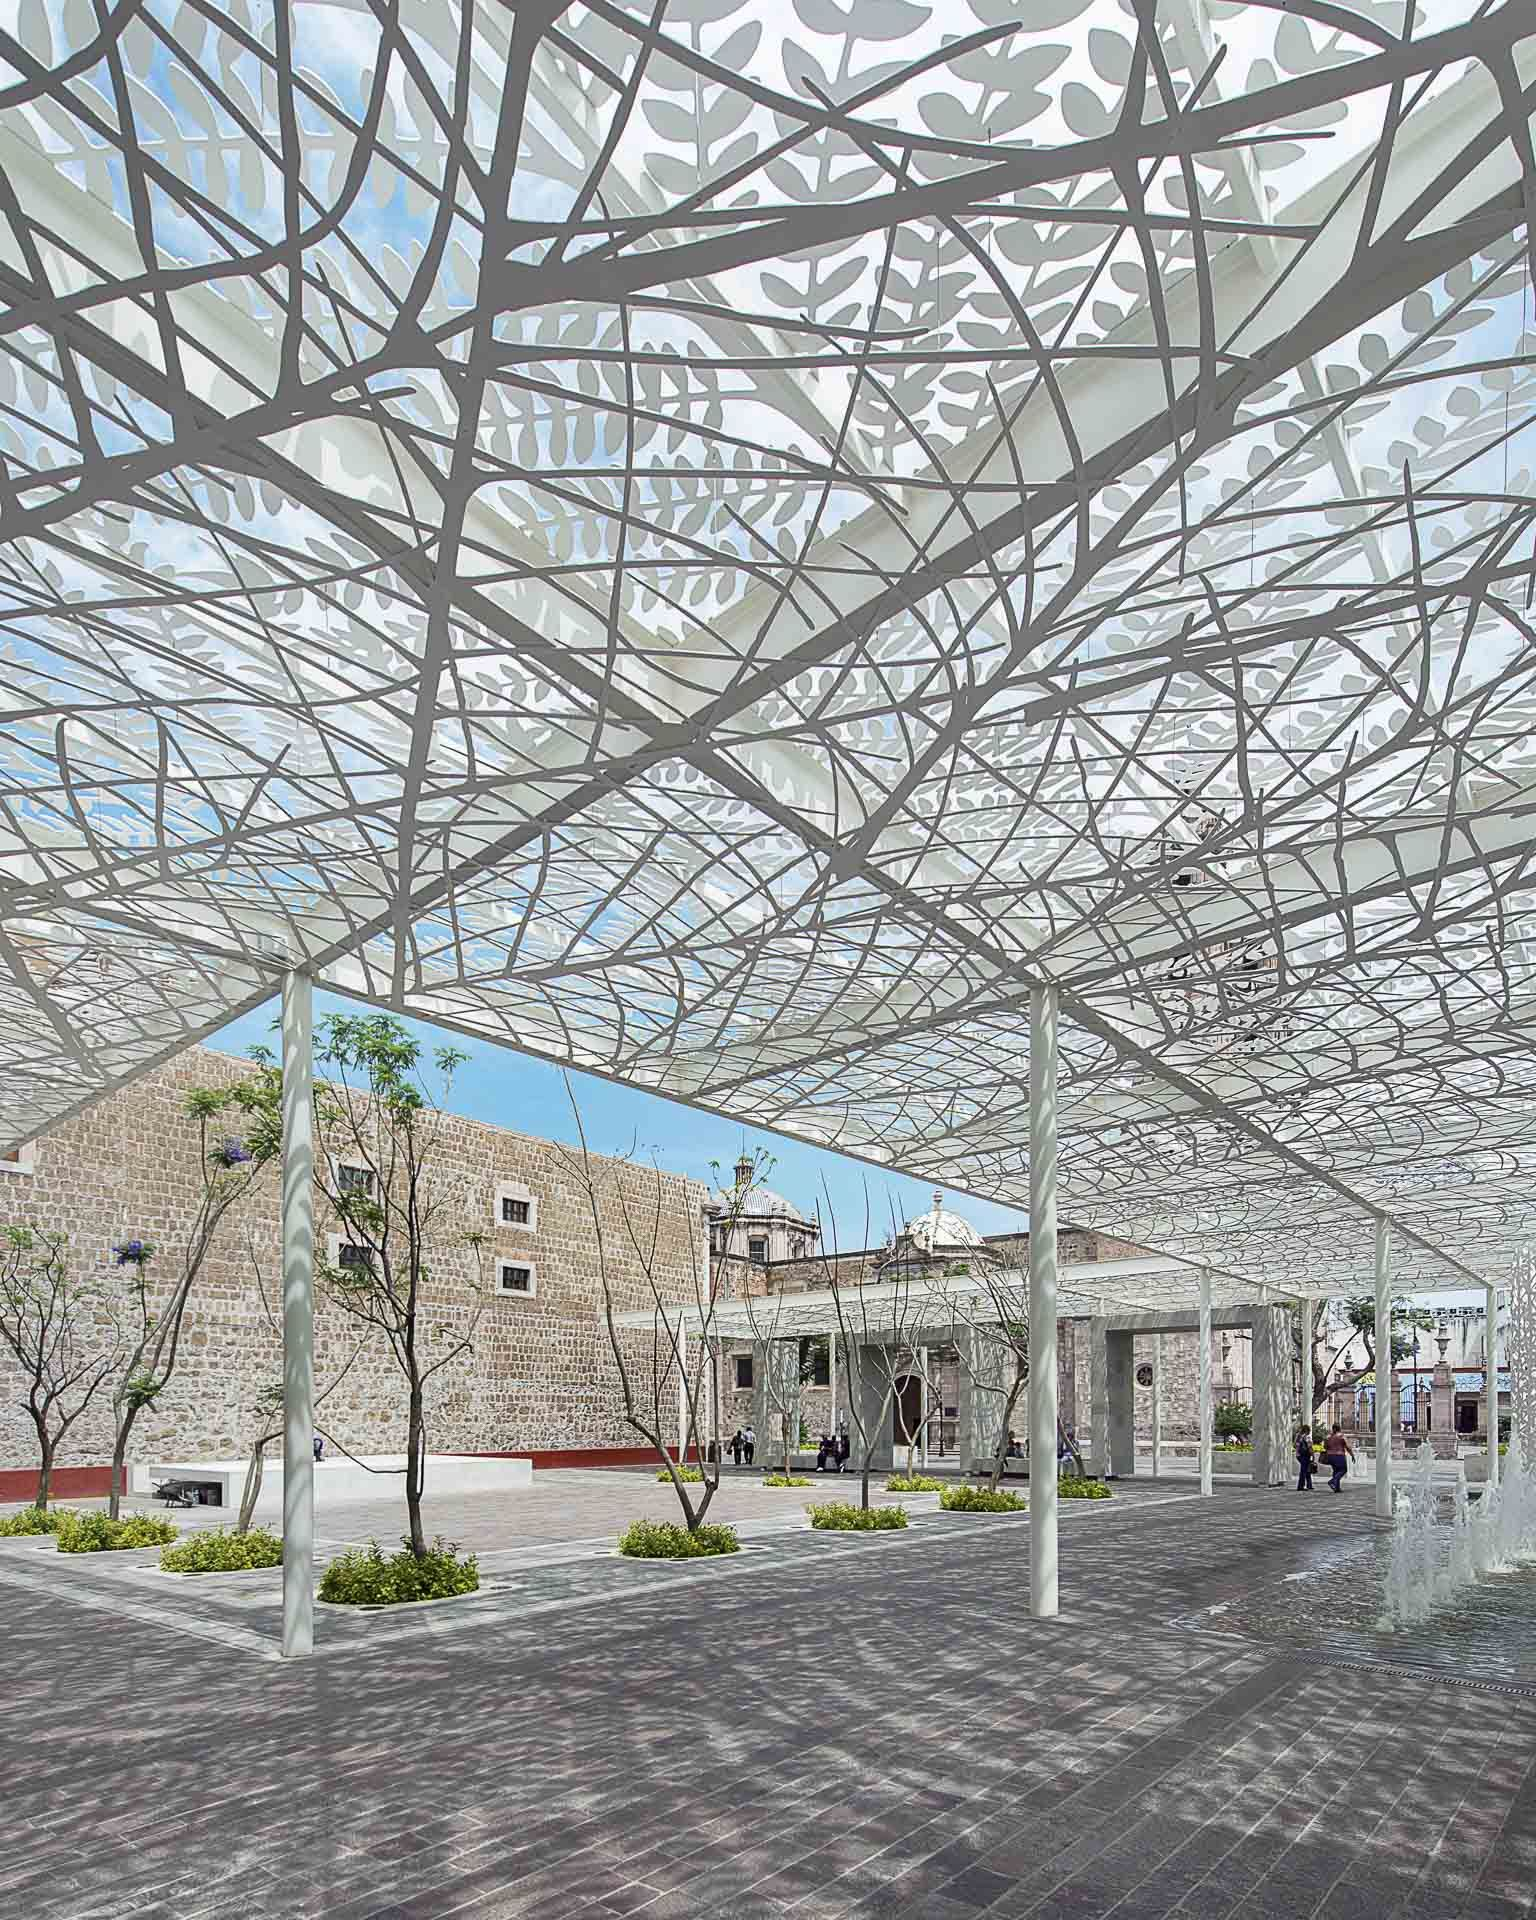 Photo of perforated metal canopy casts shadows at for Steel shade structure design